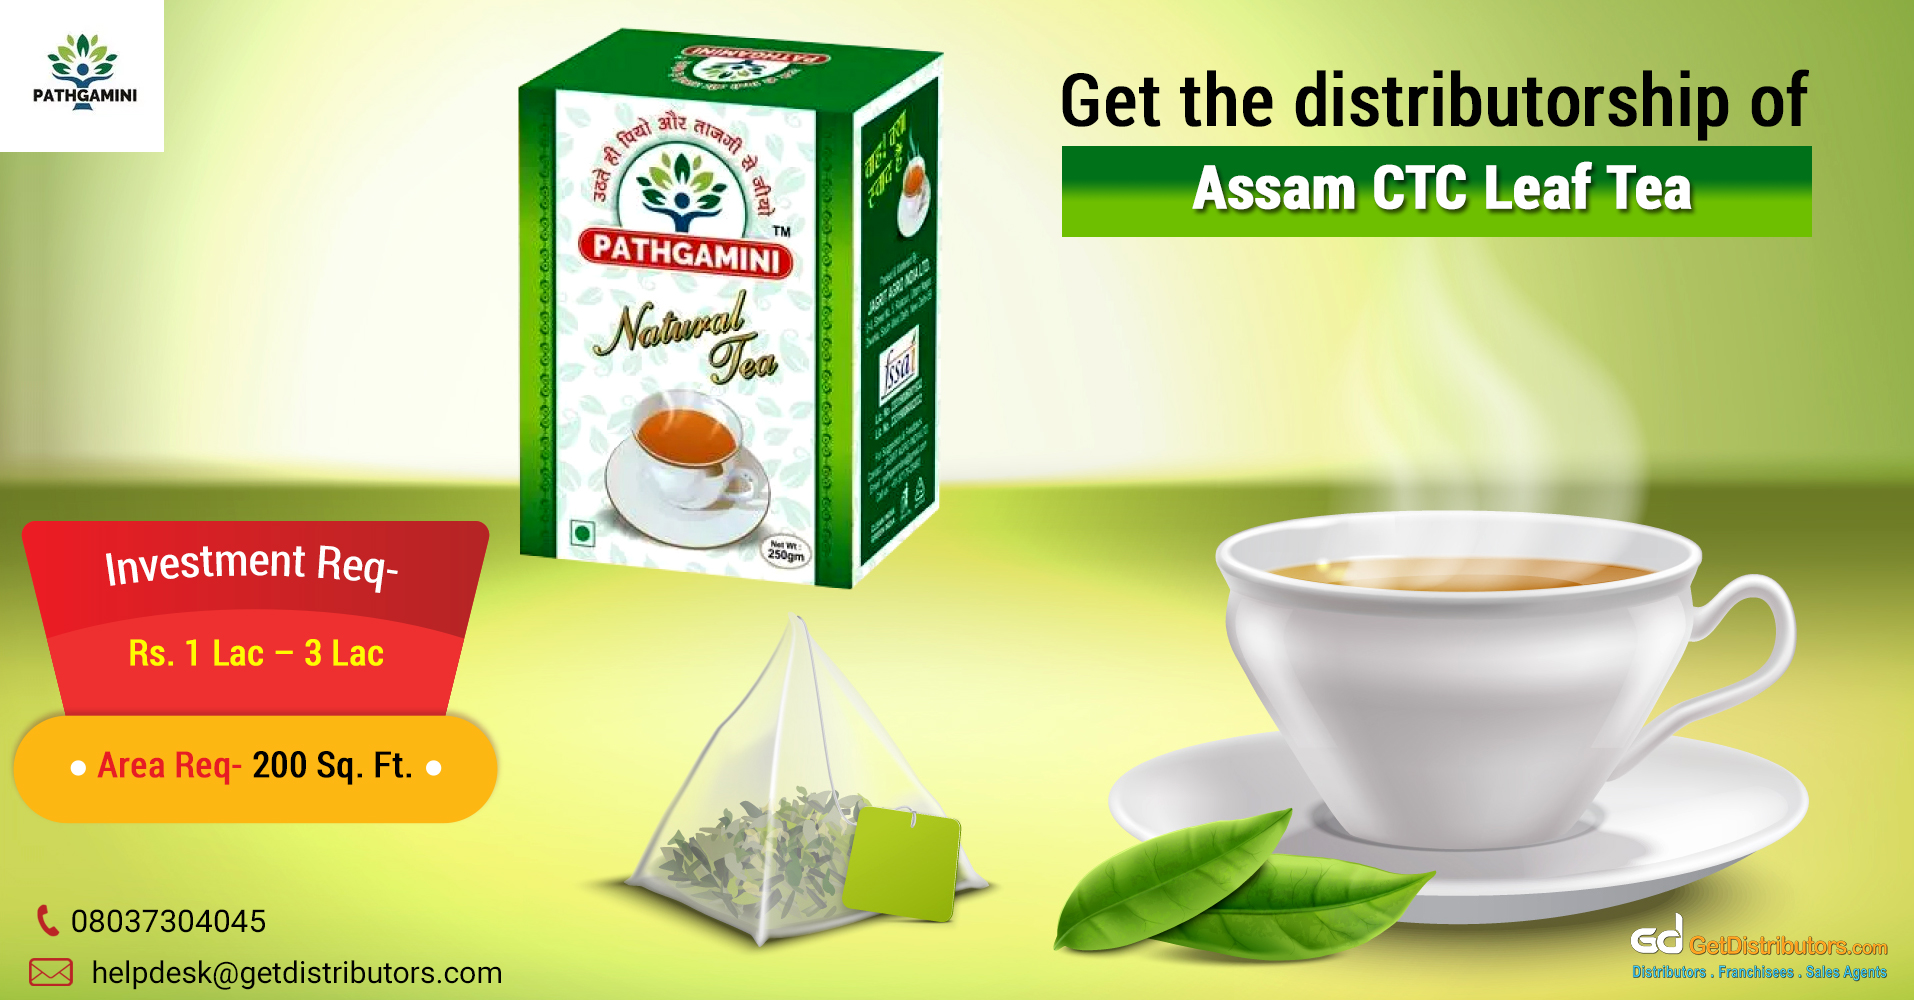 One of the finest varieties of tea for distribution